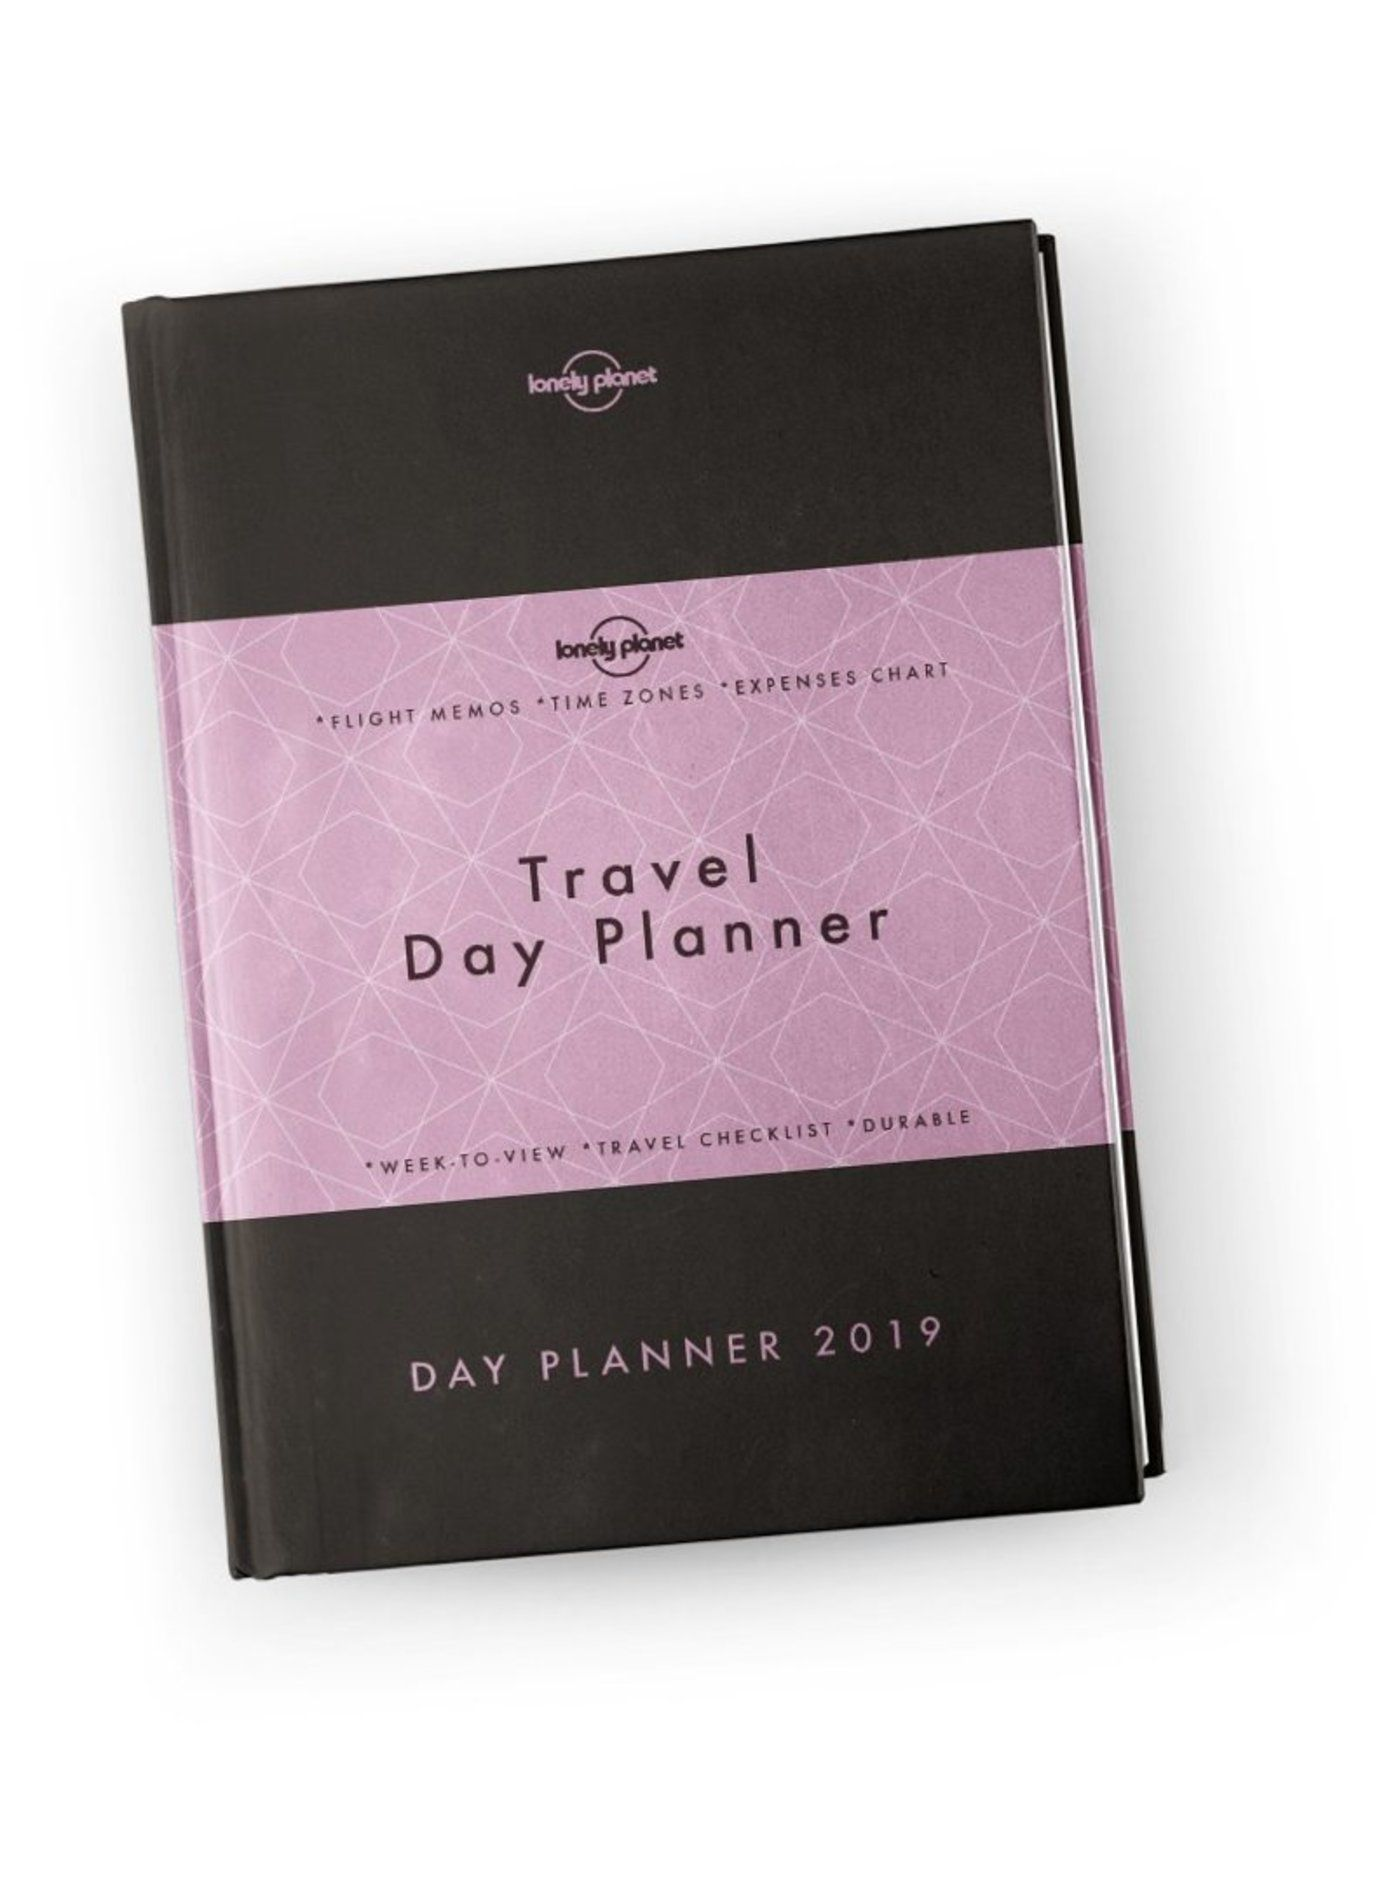 Lonely Planet's Travel Day Planner 2019